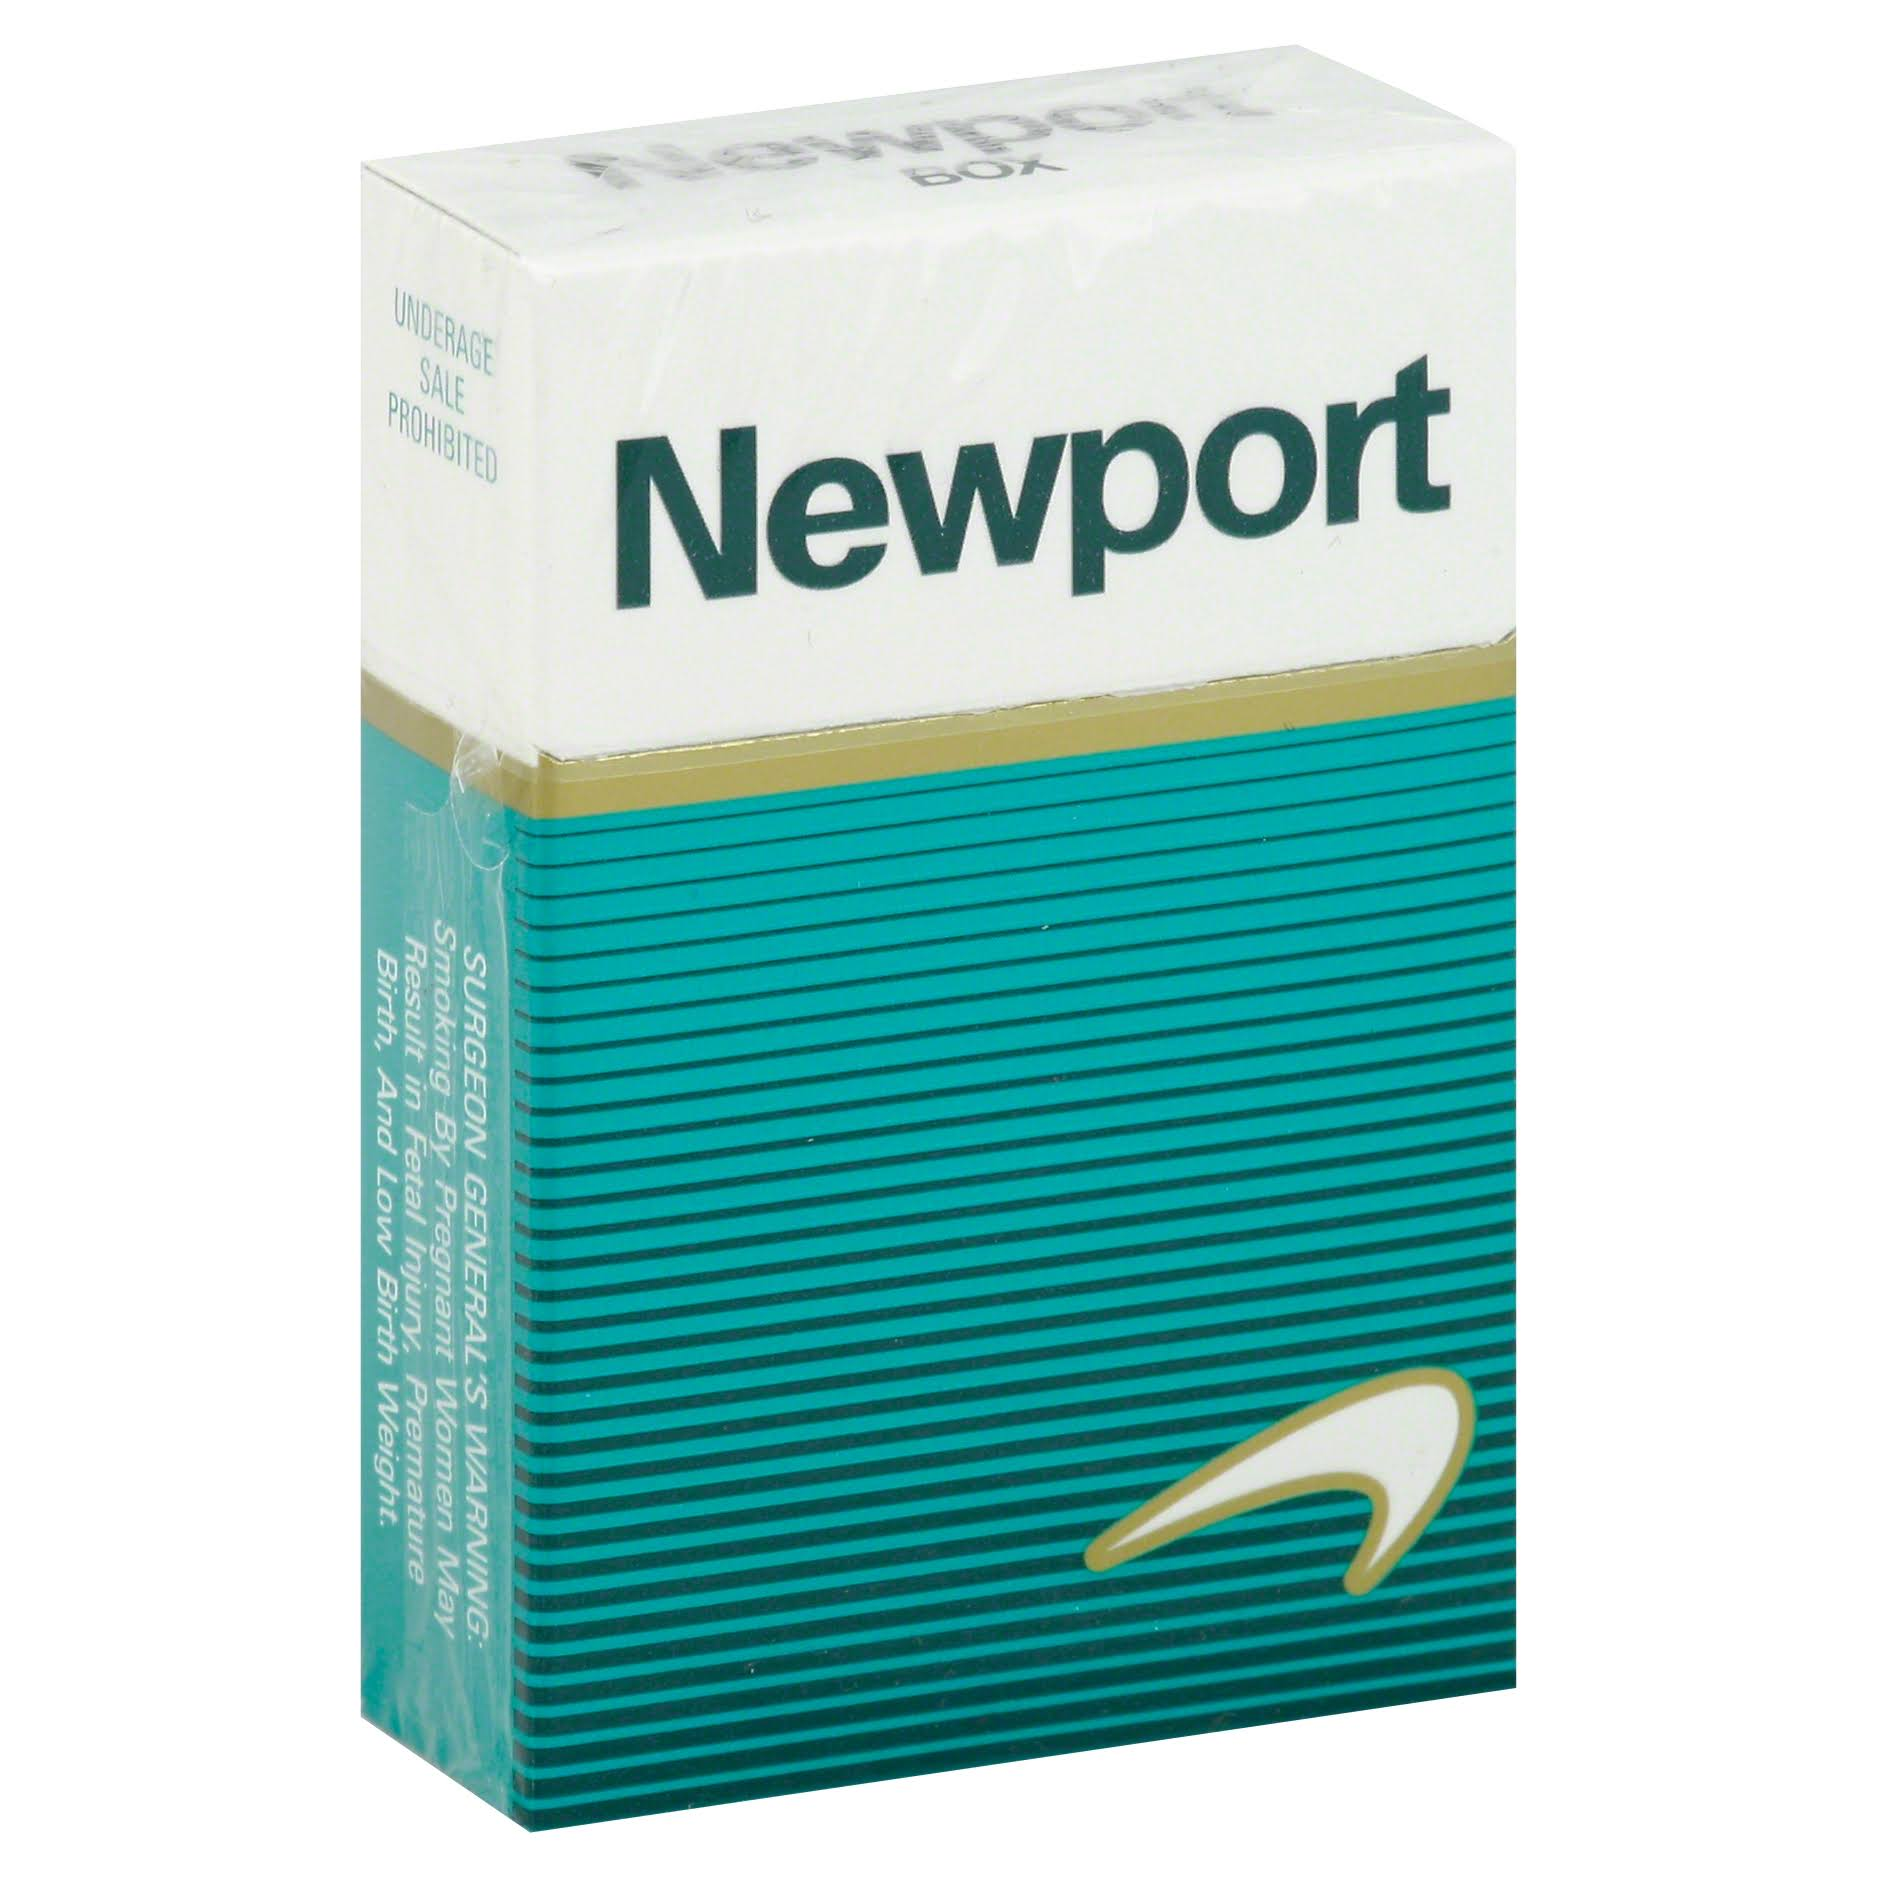 Newport Cigarettes, Box - 20 cigarettes